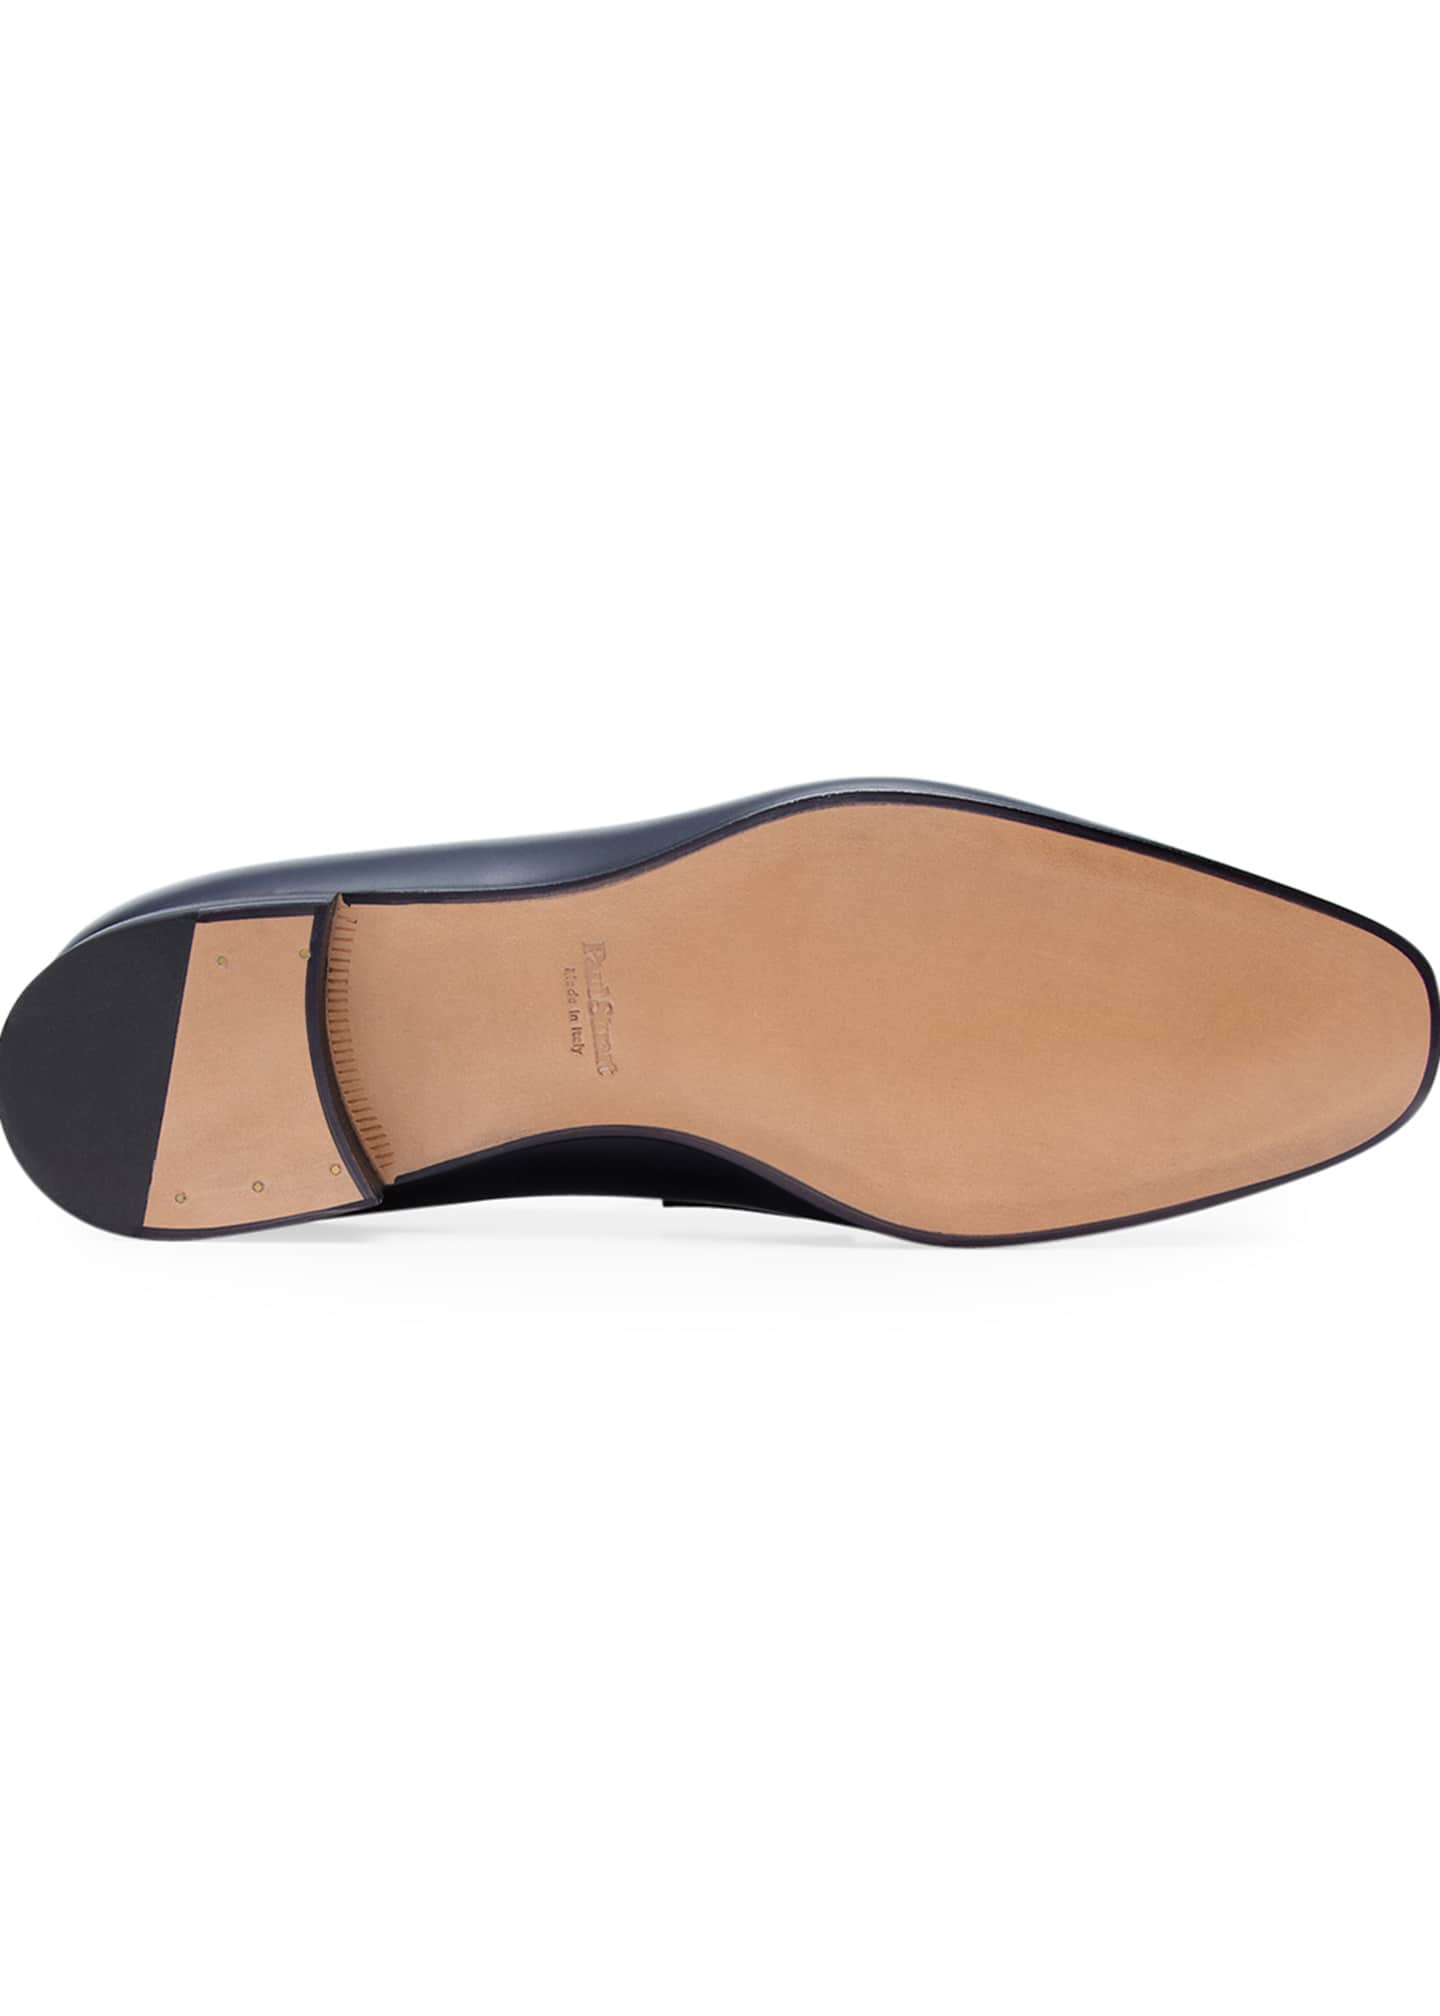 Image 5 of 5: Men's Heron Smooth Leather Loafers